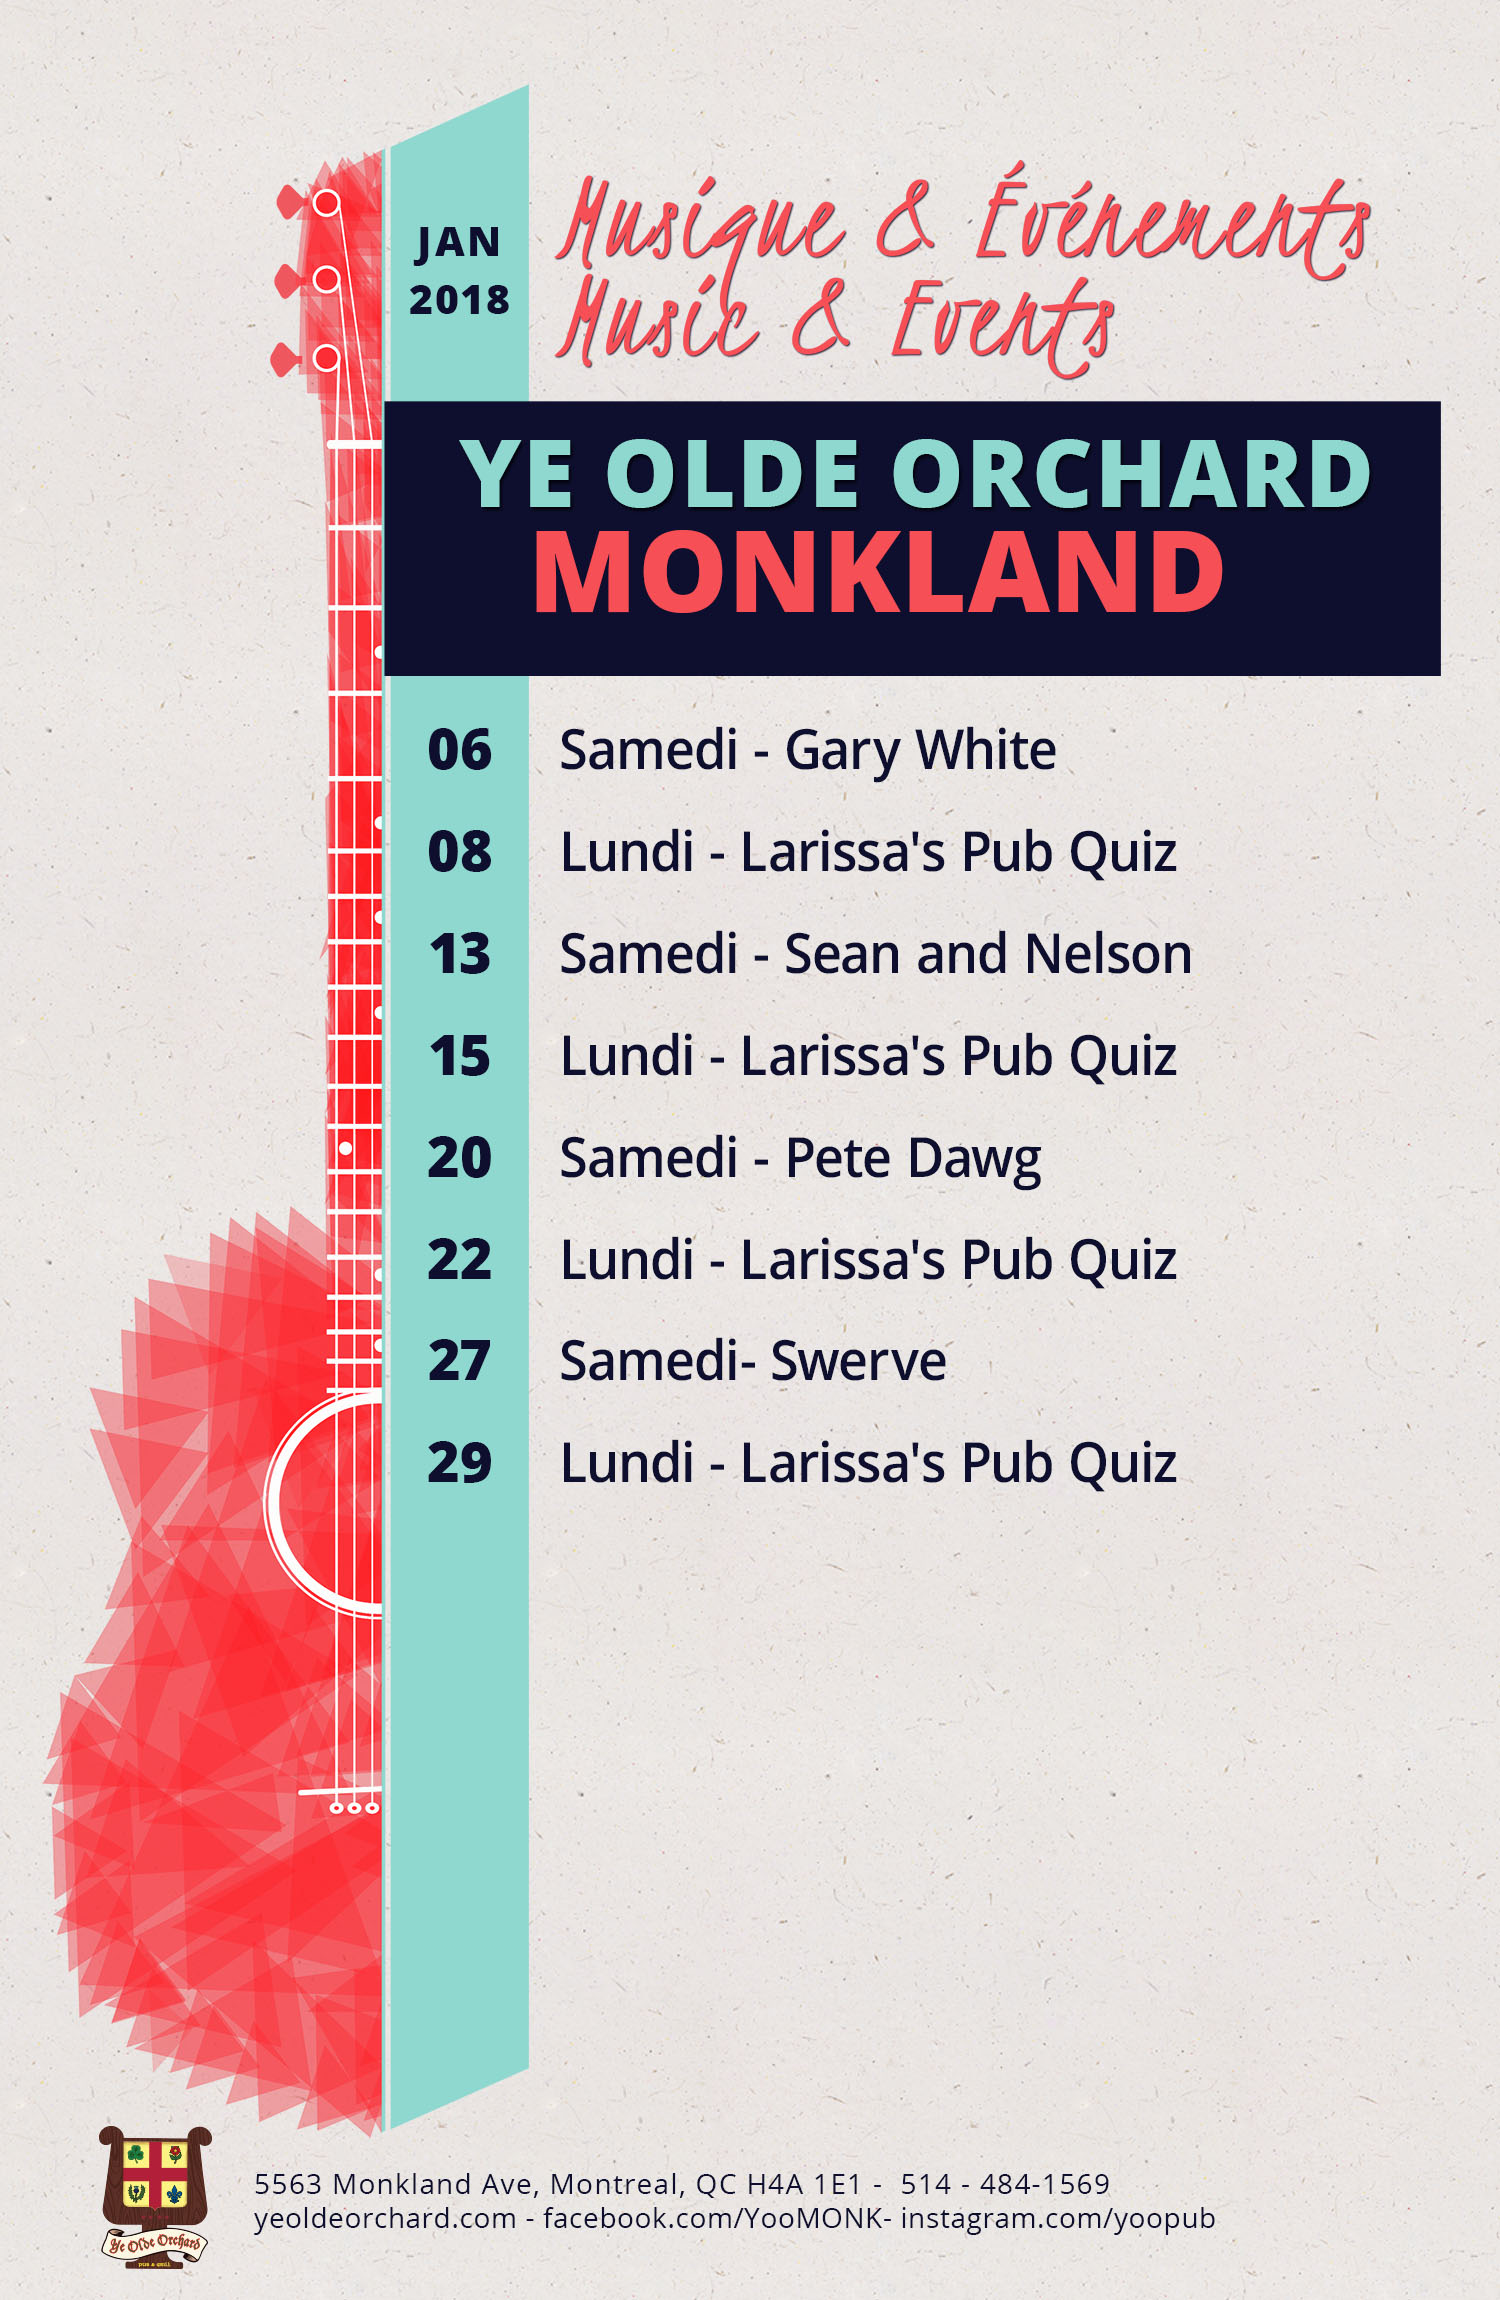 ye-olde-orchard-pub-music-and-events-calendar-Monkland-WEB